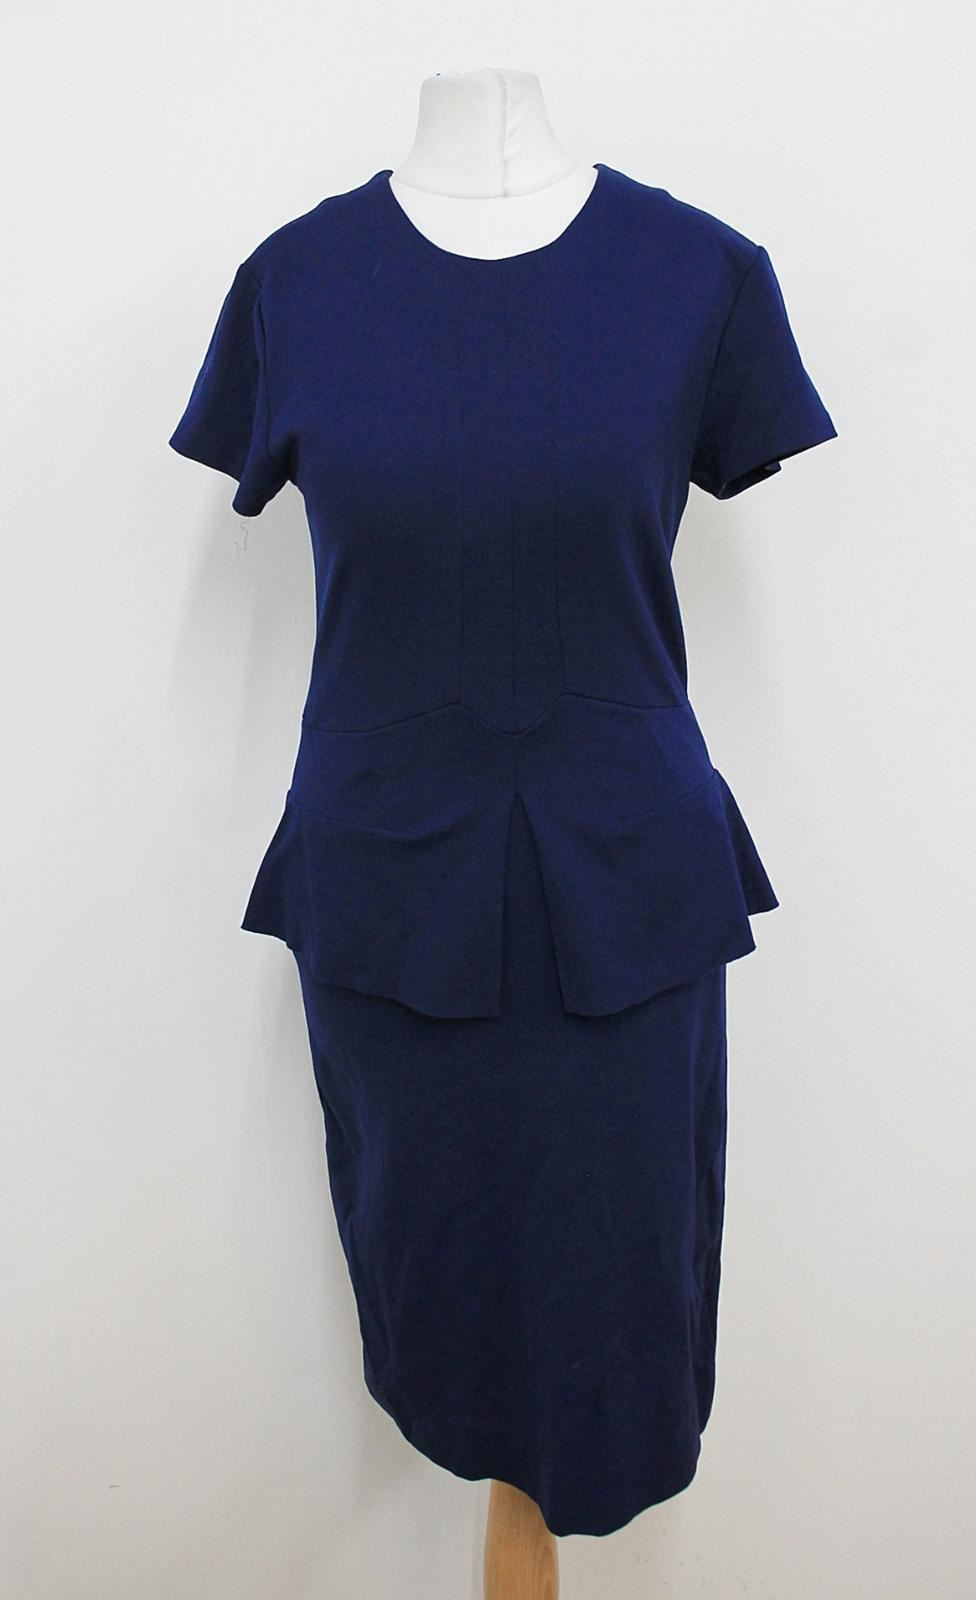 IRIS-amp-INK-Ladies-Deep-Blue-Short-Sleeved-Crew-Neck-Stretchy-Peplum-Dress-UK8